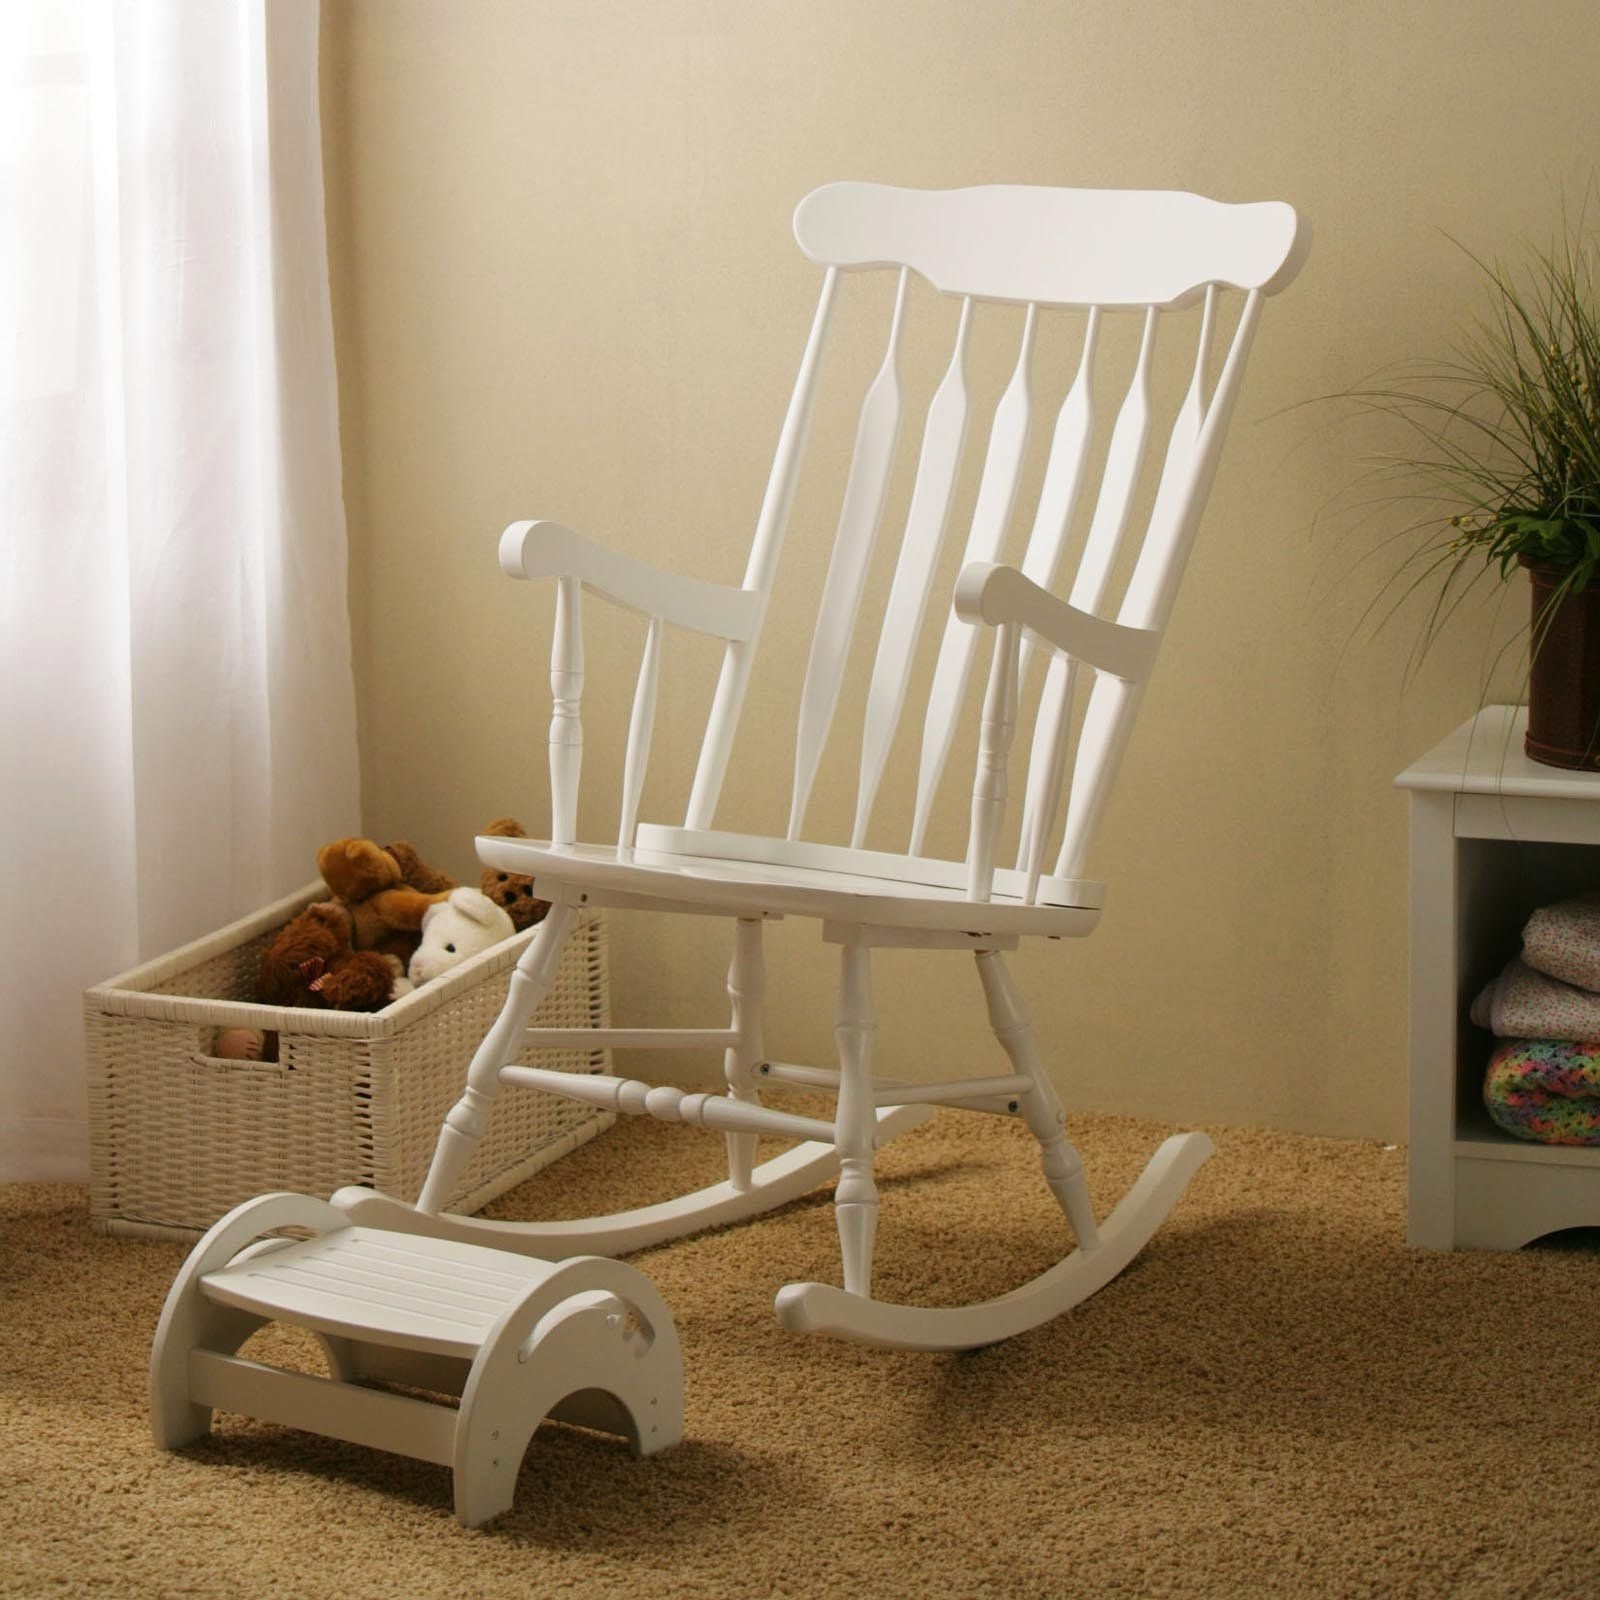 White Wicker Rocking Chair For Nursery For Most Current Rocking A Newborn Baby To Sleep In A Comfy Nursery Chair Is A Great (View 13 of 20)